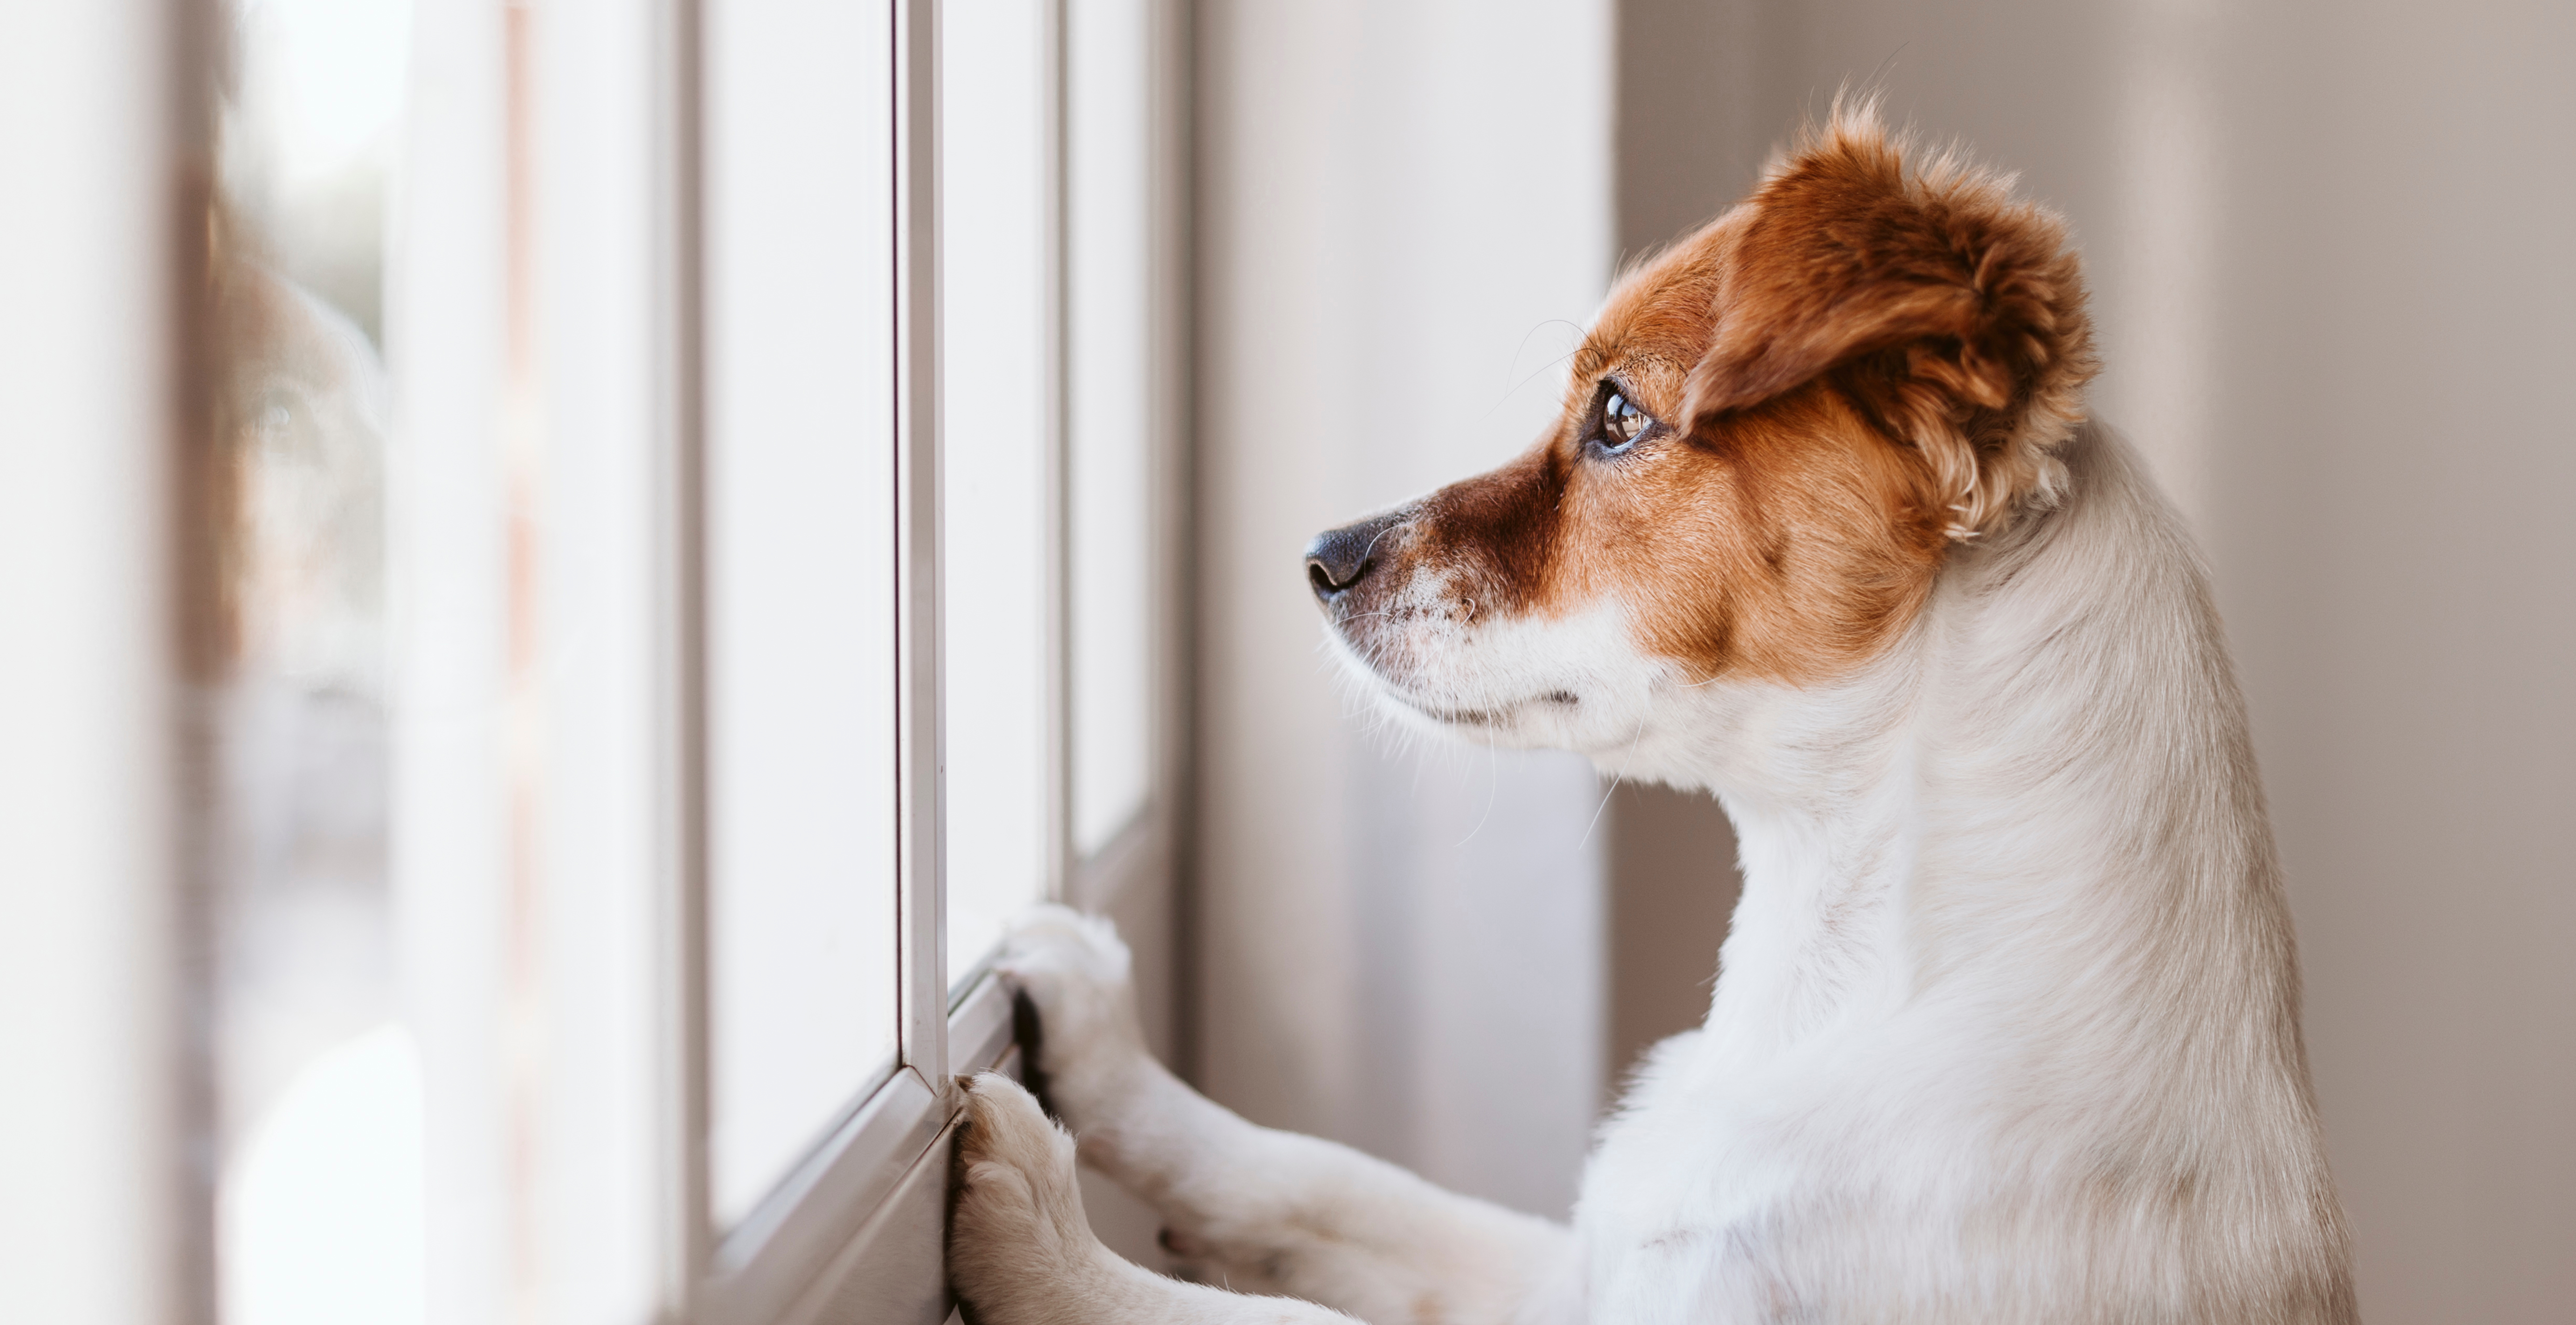 jack russell breed dog staring out a window